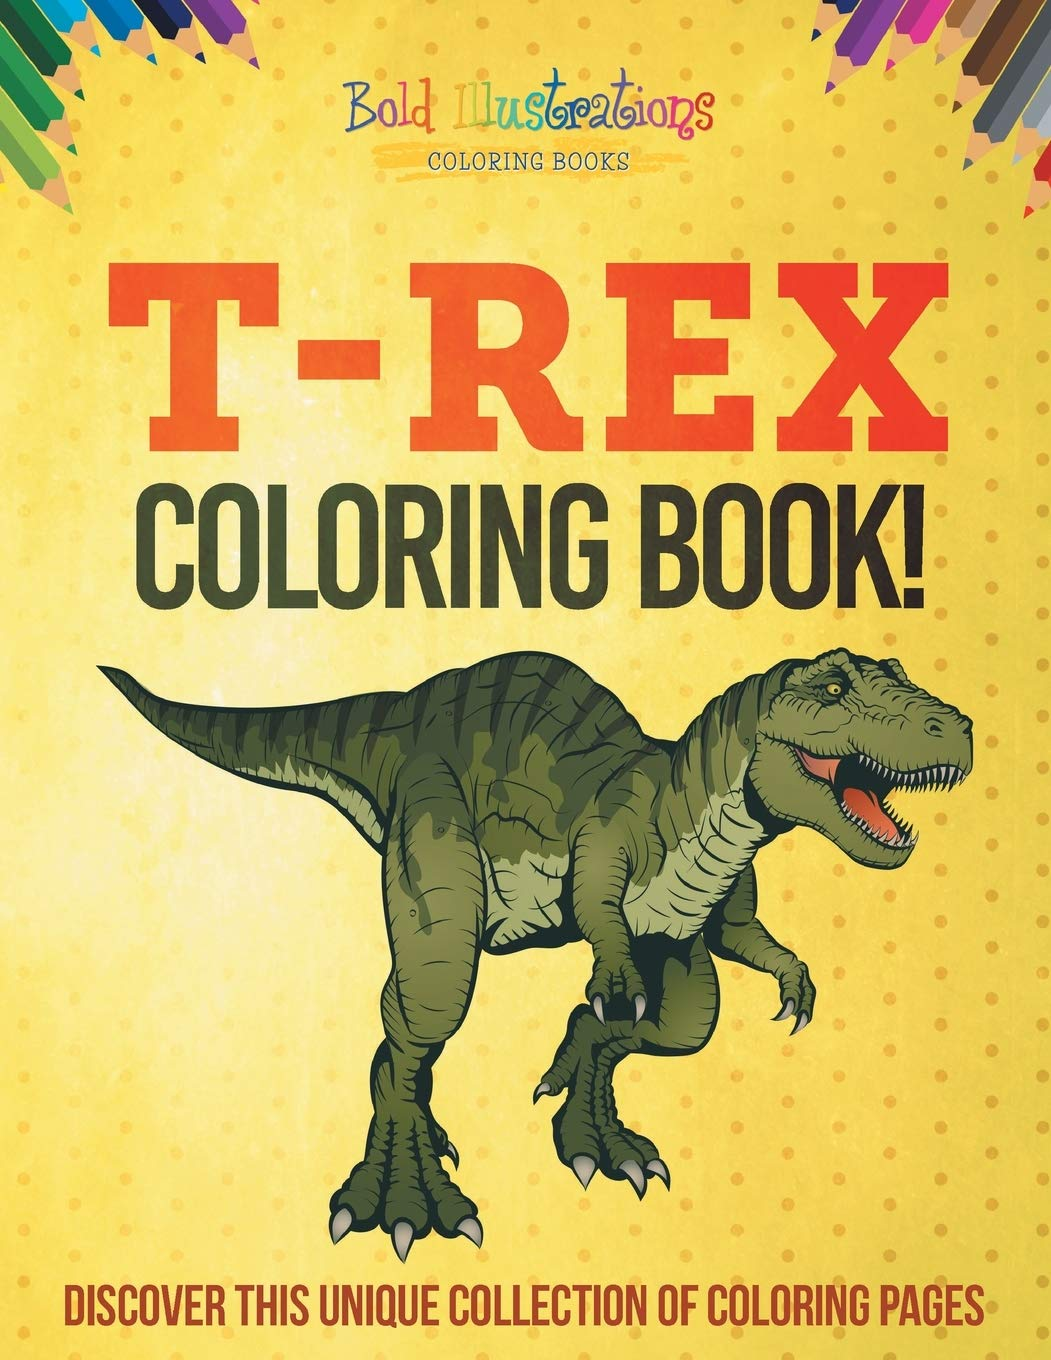 T Rex Coloring Book Discover This Unique Collection Of Coloring Pages Illustrations Bold 9781641938440 Amazon Com Books